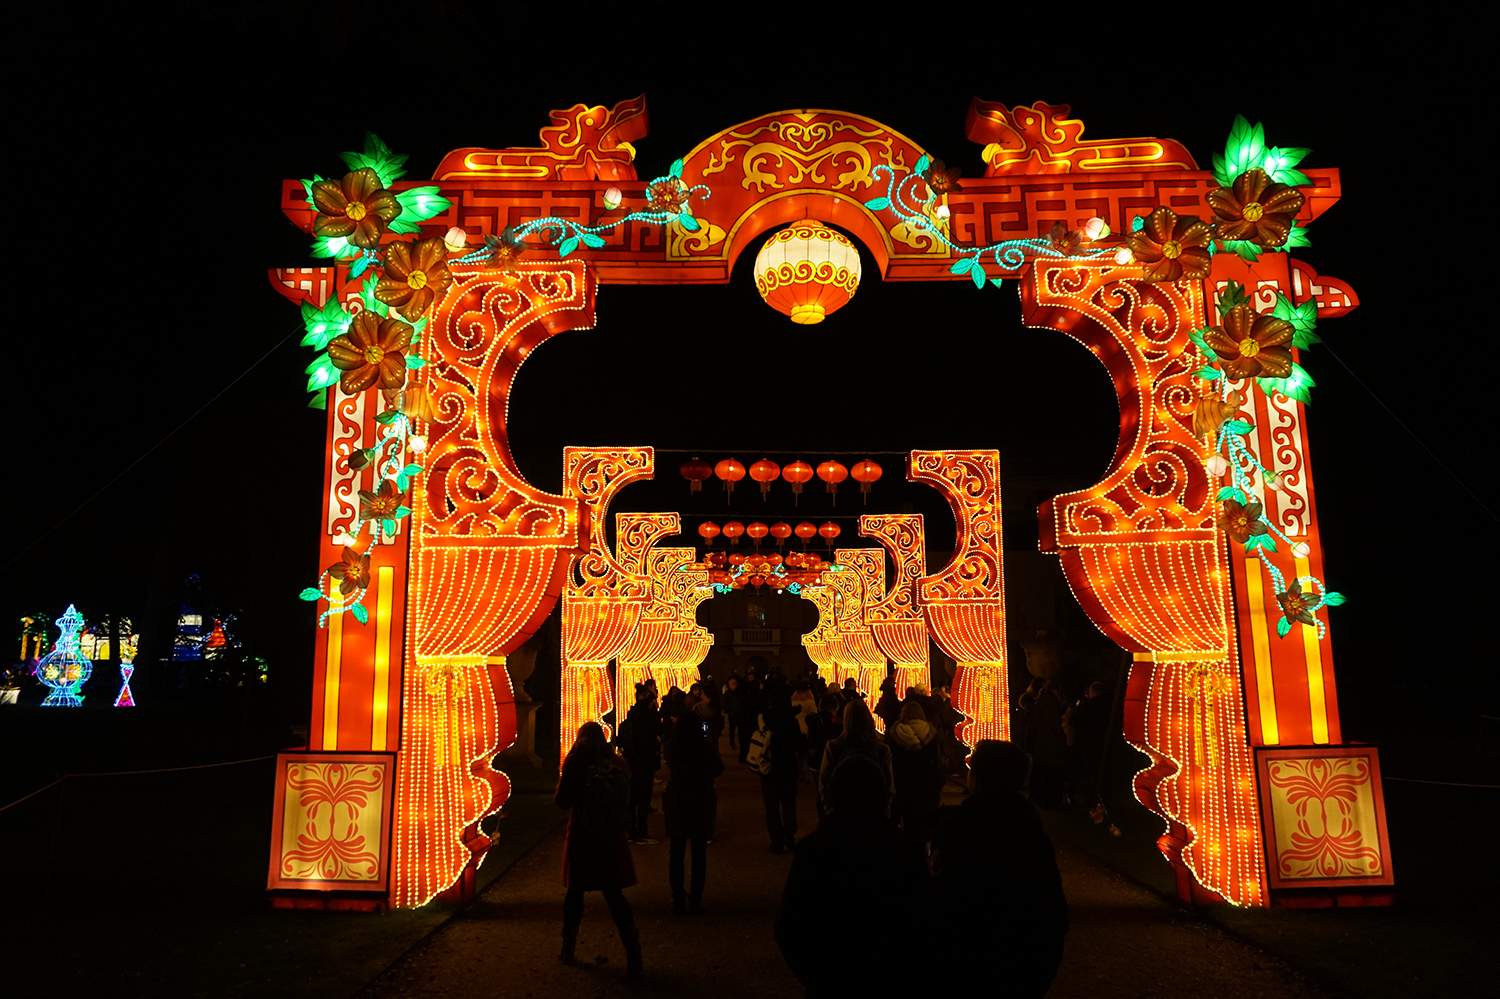 magical_lantern_festival_chiswick_22